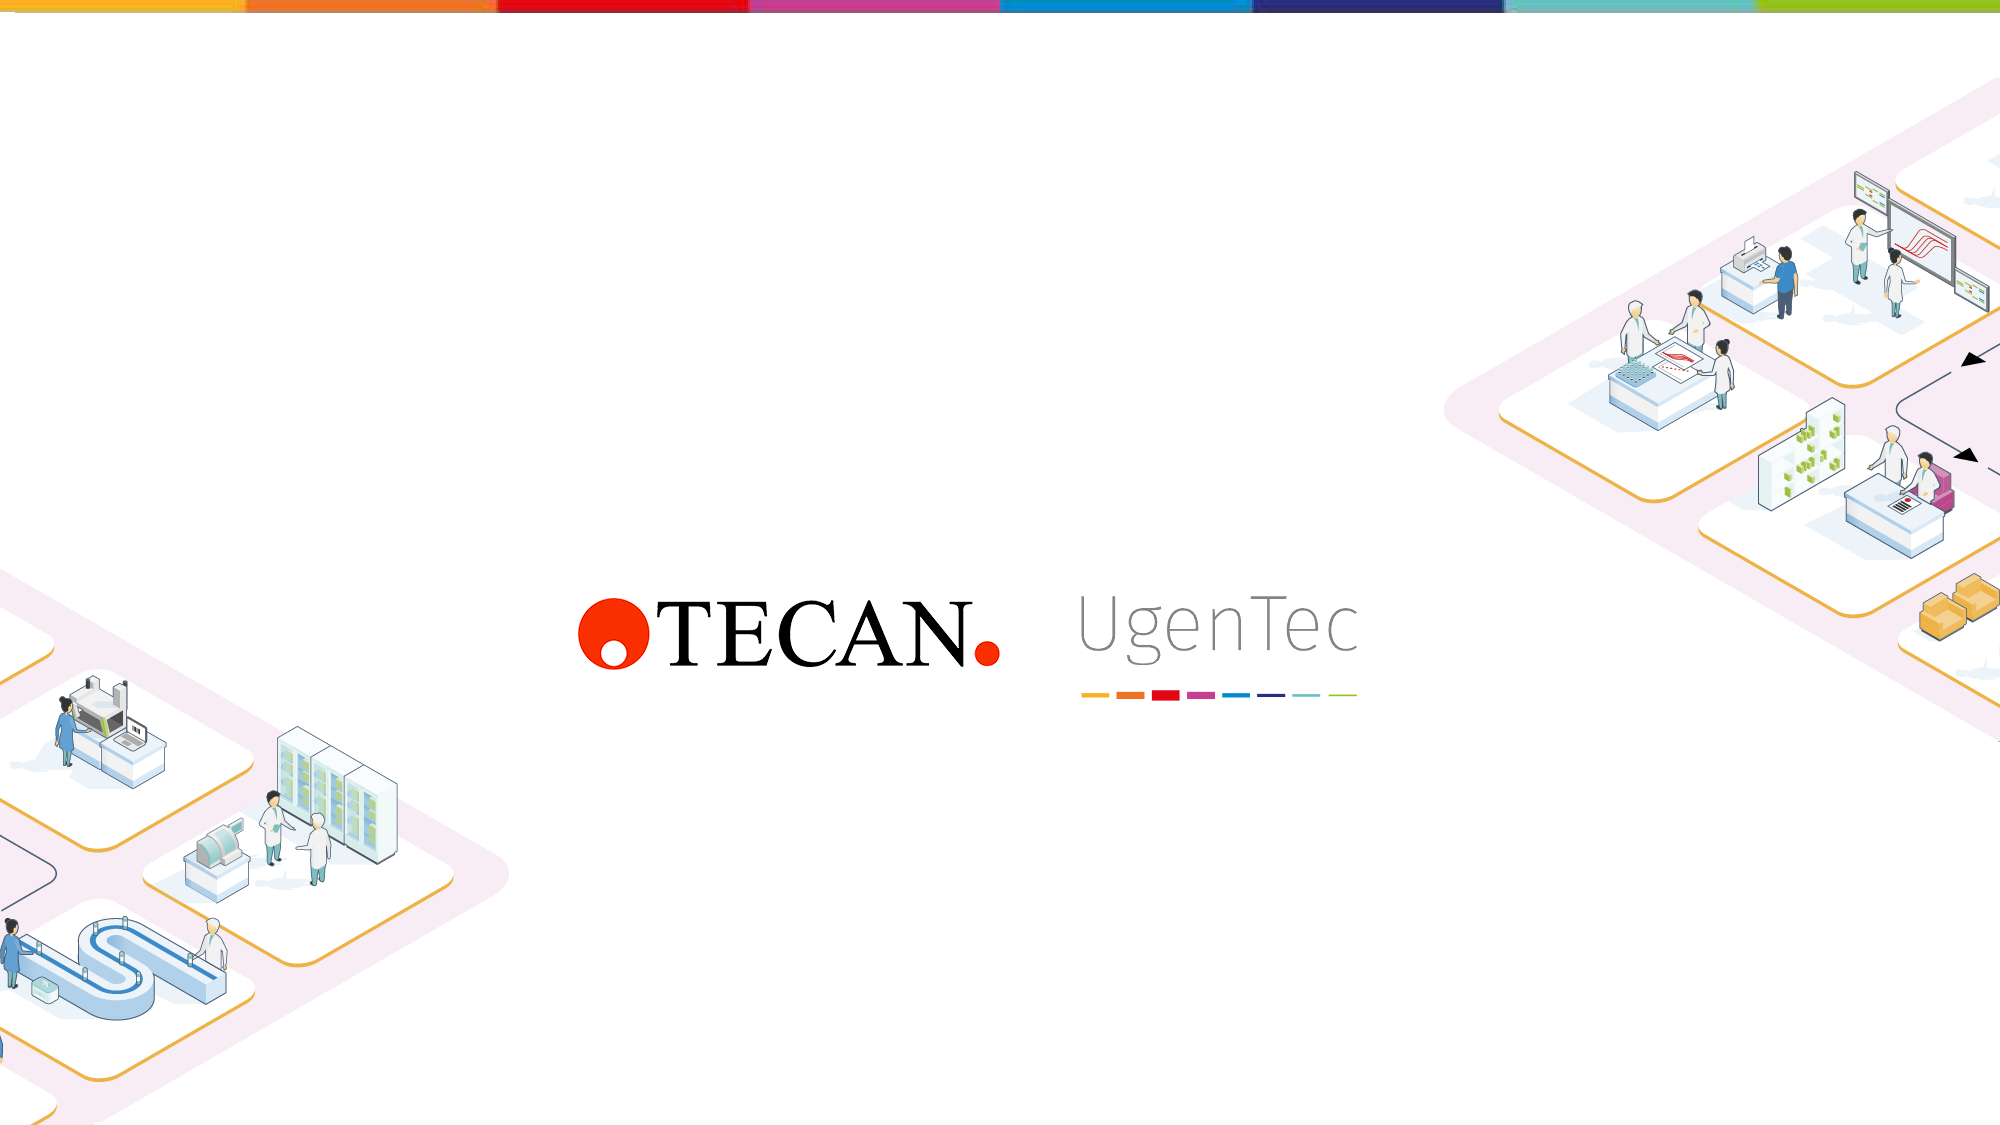 Tecan and UgenTec collaboration